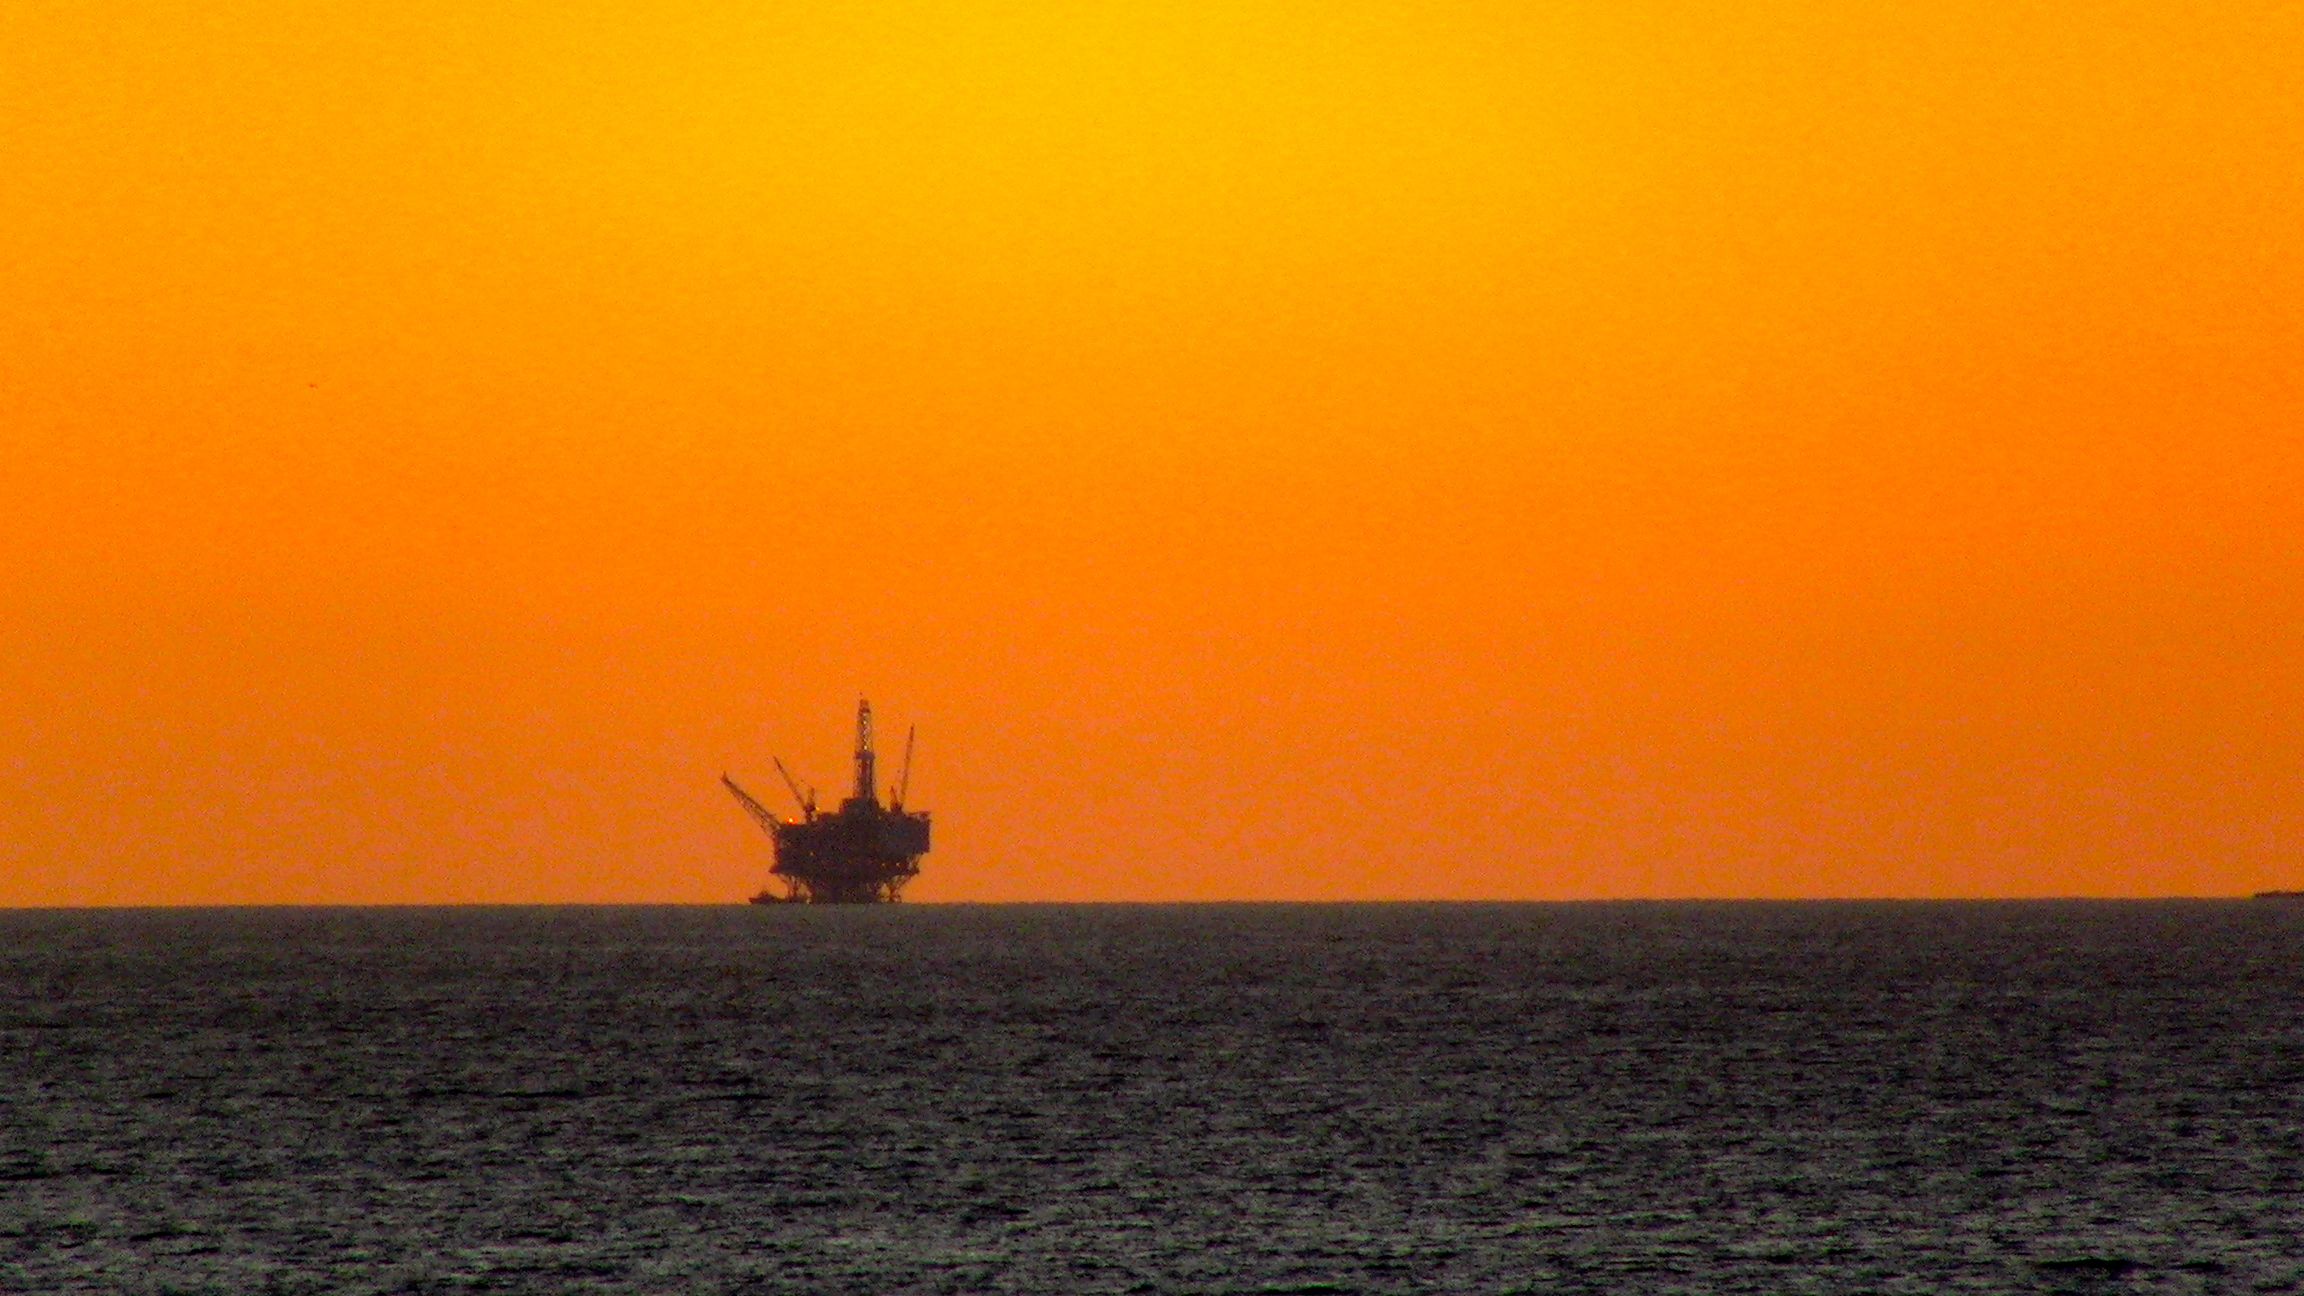 An oil drilling platform off the coast of Santa Barbara, CA - 6 December 2011. By TheConduqtor - Own work, CC BY-SA 3.0, https://commons.wikimedia.org/w/index.php?curid=24642259